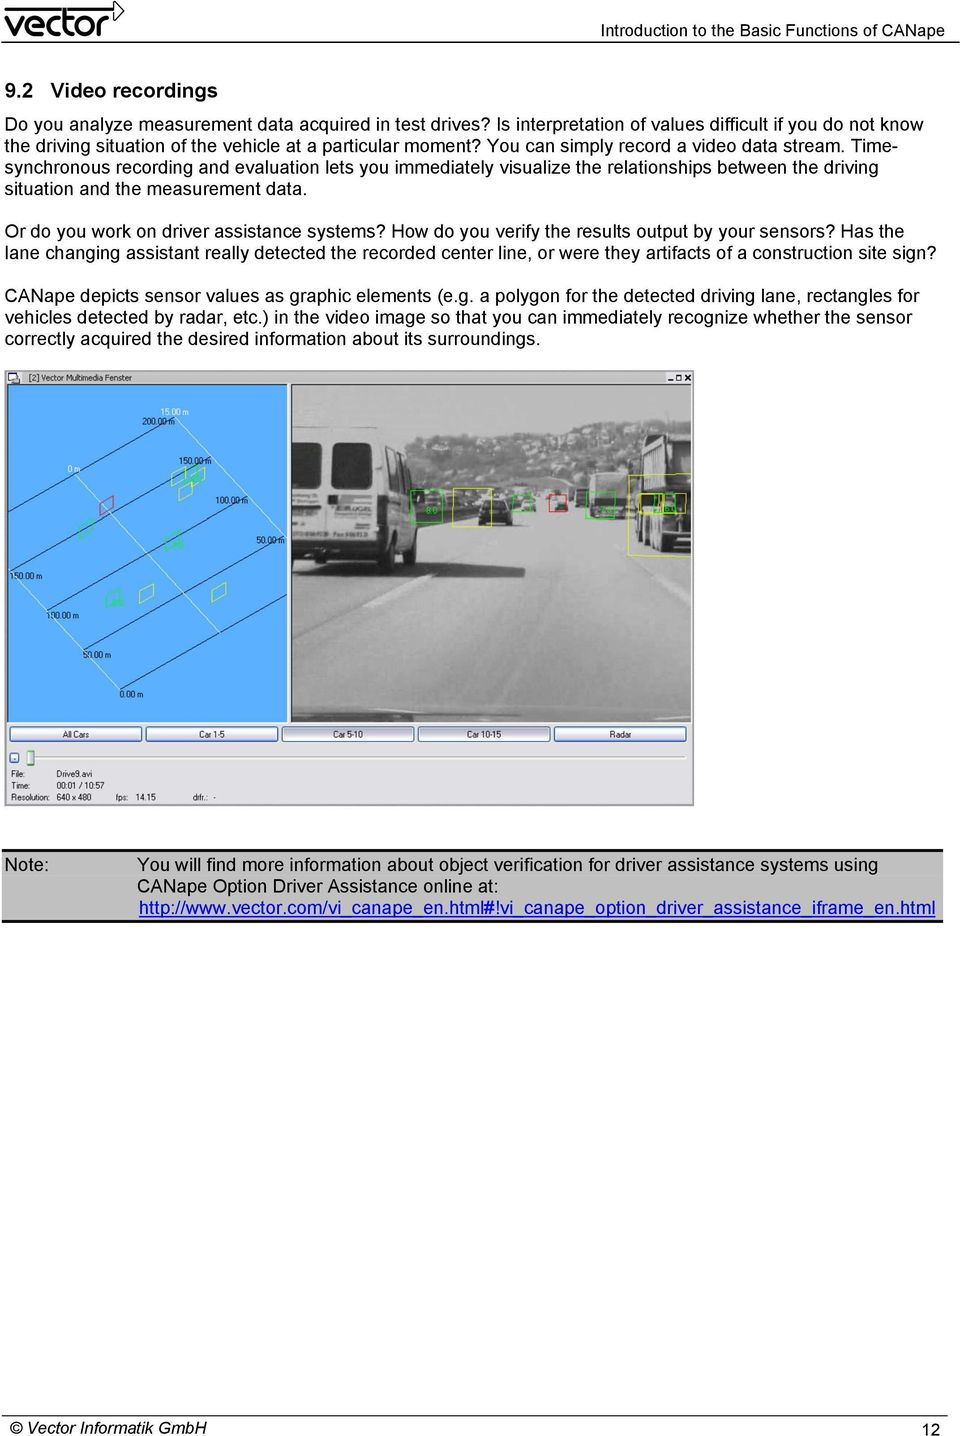 Or do you work on driver assistance systems? How do you verify the results output by your sensors?